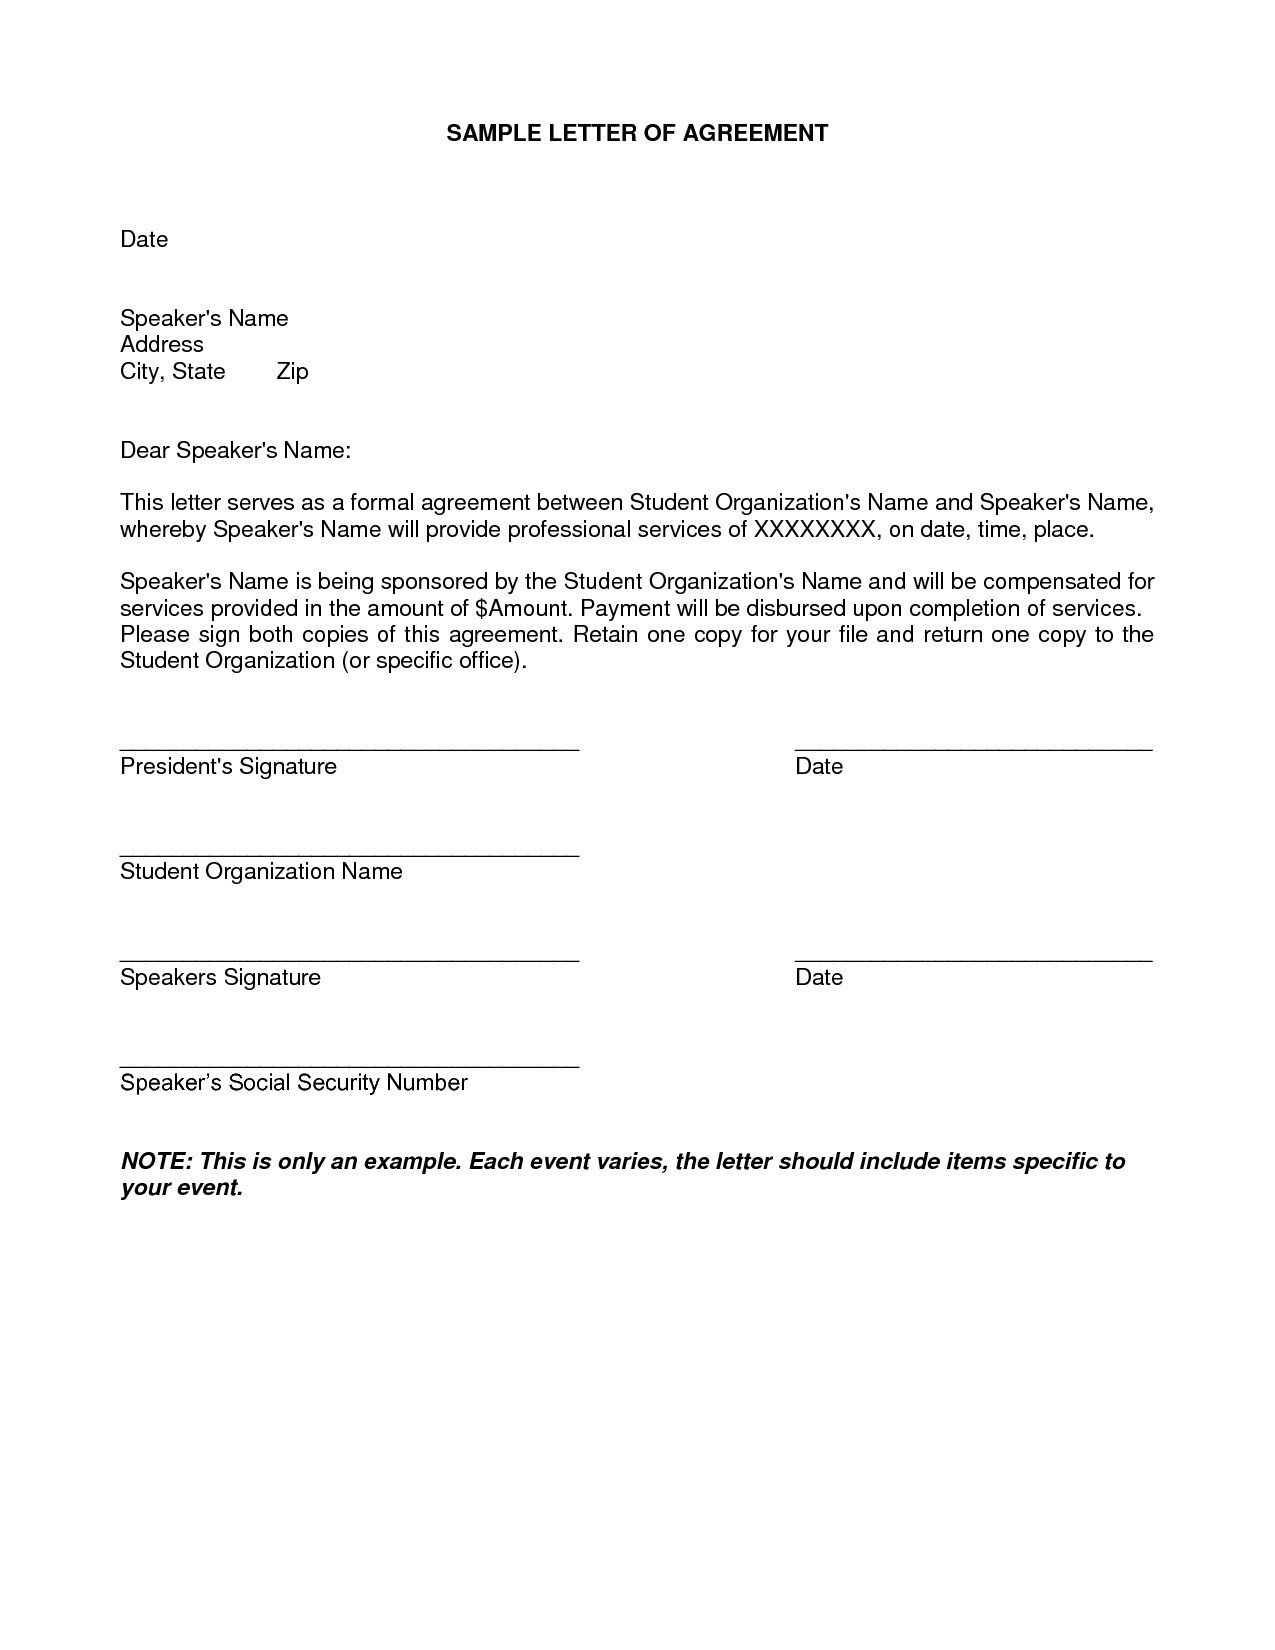 General Contractor Warranty Letter Template - Awesome Irs Proposed Changes Letter